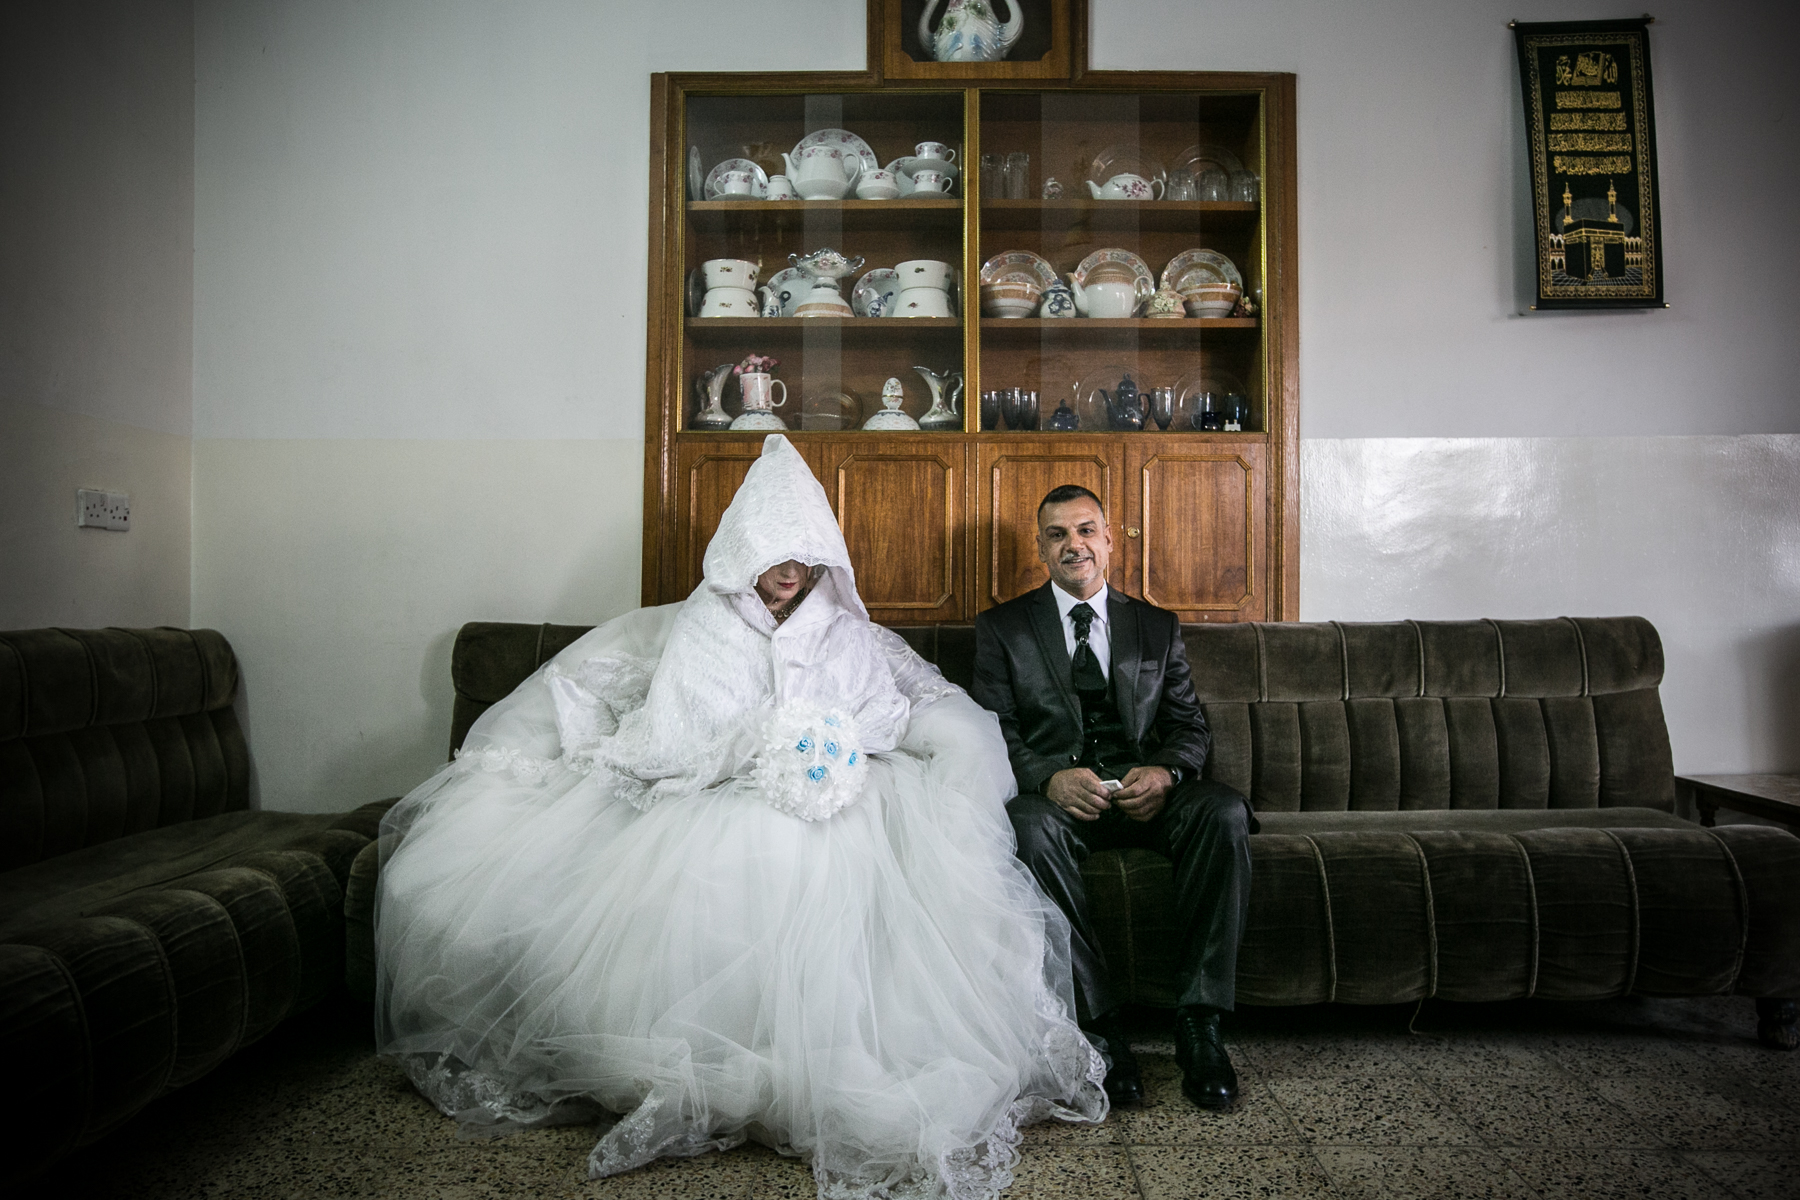 Yusuke_Suzuki_The battle for Mosul_Mahmoud and his bride Iklas got married after Mosul was liberated from ISIS_06.jpg